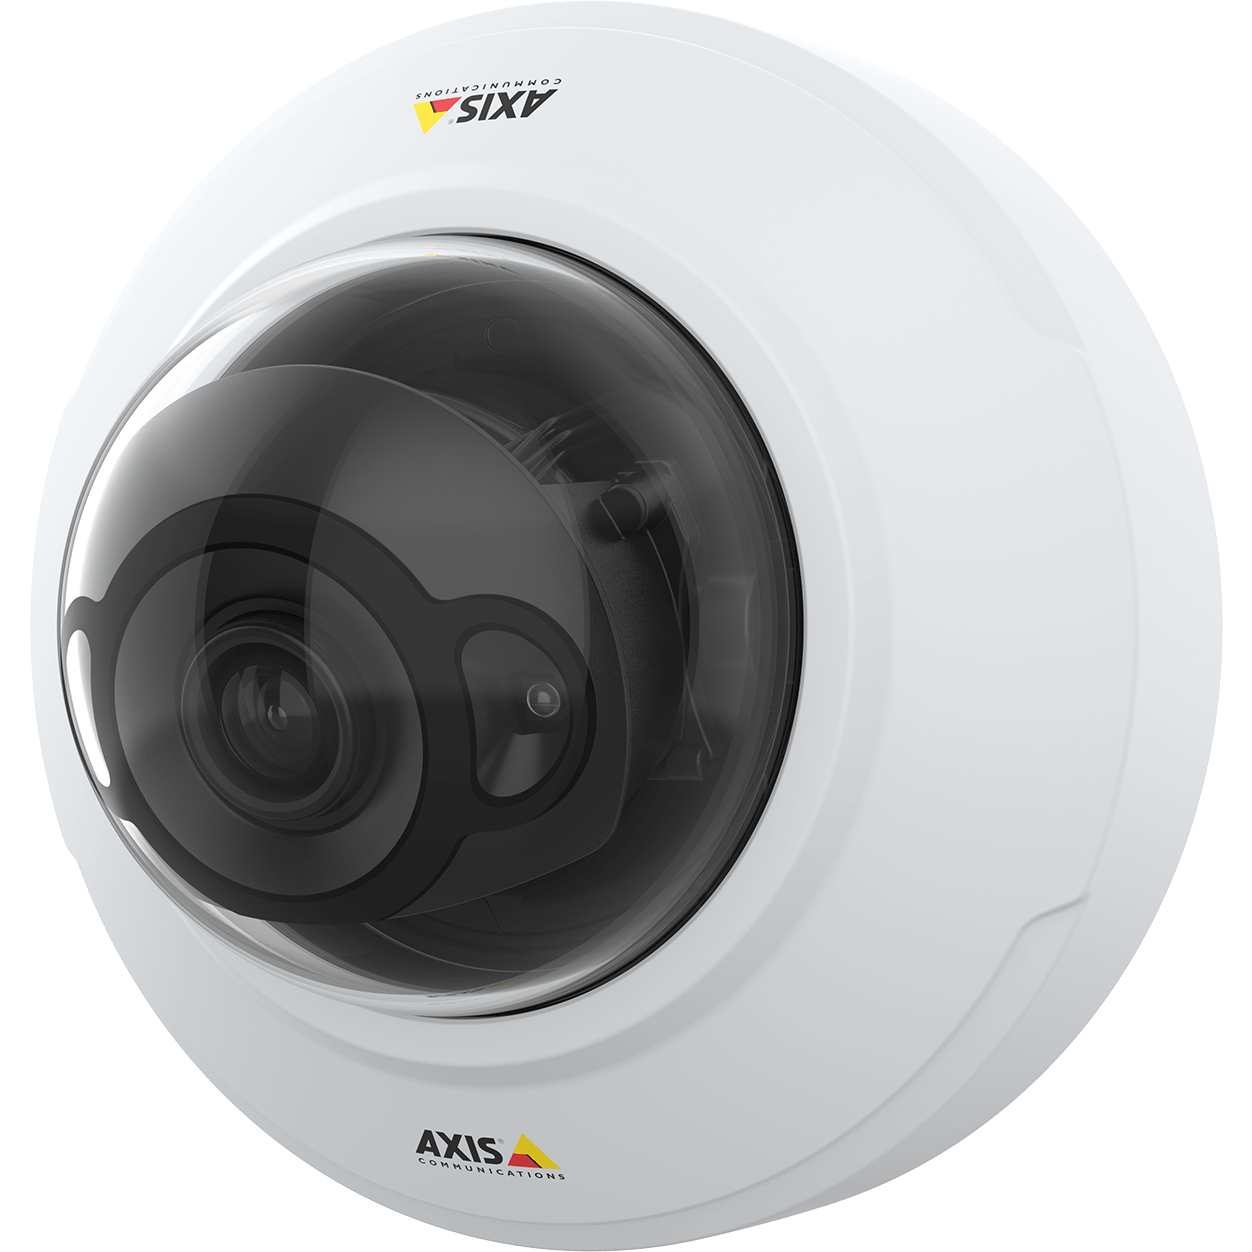 Camera De Surveillance Exterieur Sans Fil Axis Axis M42 Network Camera Series Axis Communications